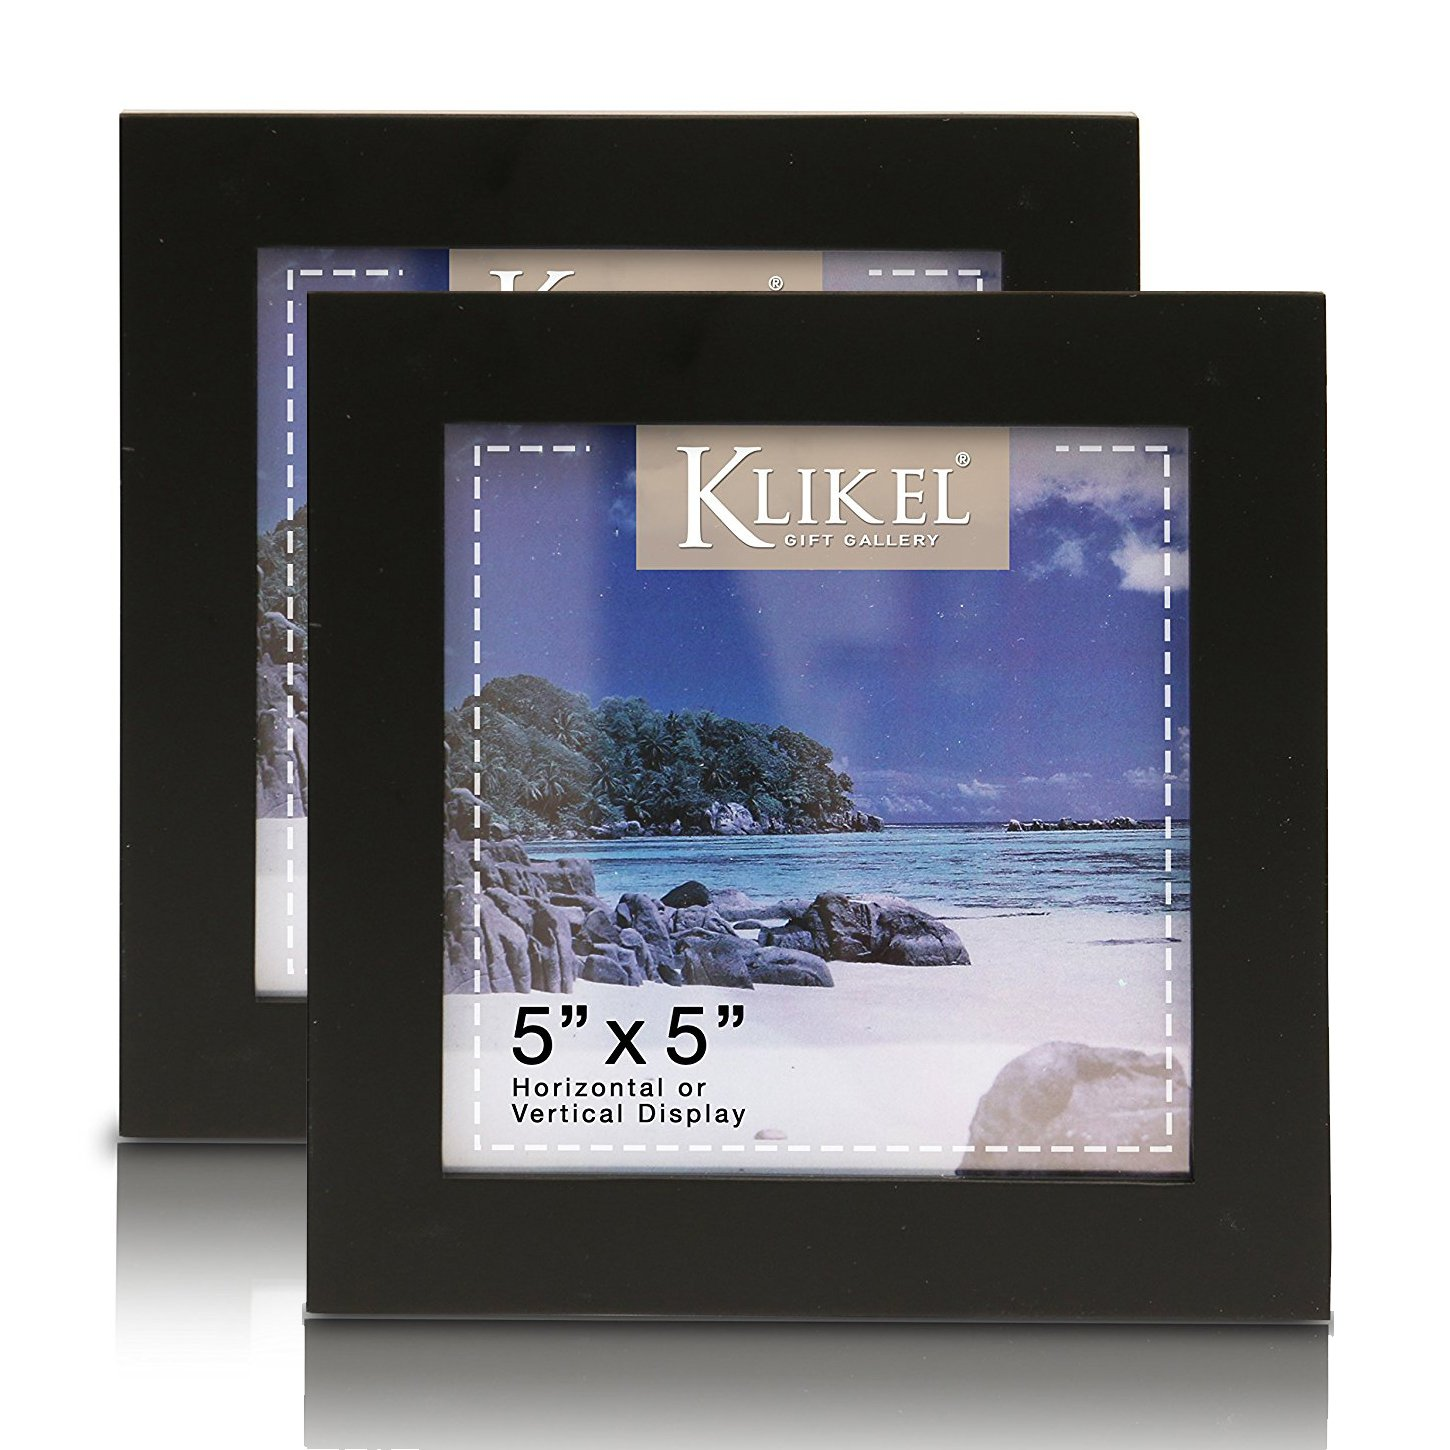 Klikel 5 X 5 Black Picture Frame | Set of 2 5x5 Black Wooden Photo Frame | Made of Real Wood with Glass Photo Protection | Wall Hanging and Table Standing Display by Klikel